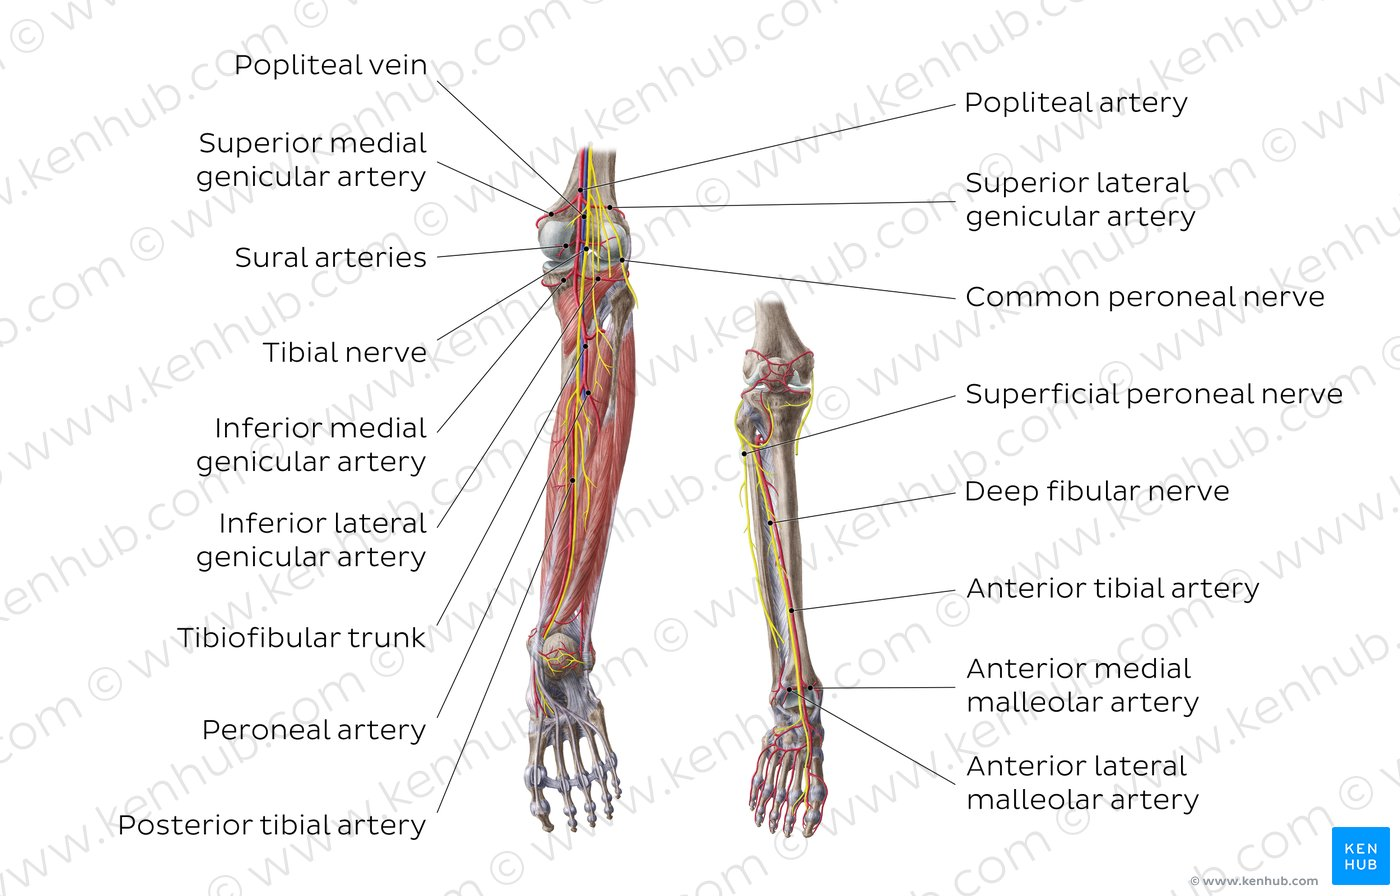 lower leg nerve diagram vehicle damage pictures neurovasculature of the and knee anatomy overview